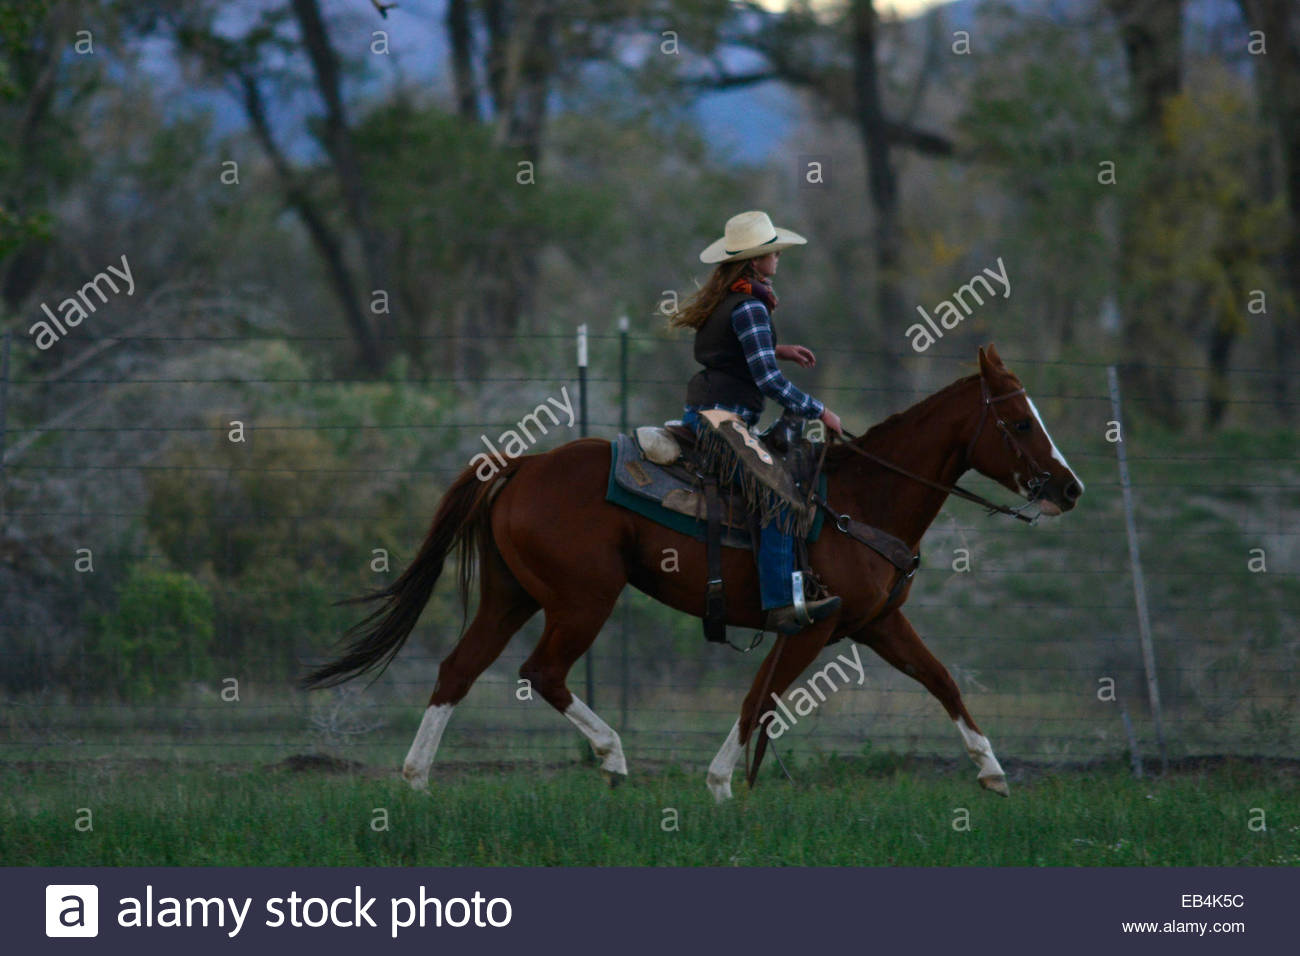 A woman rides a horse in a fenced in pasture on a ranch. - Stock Image